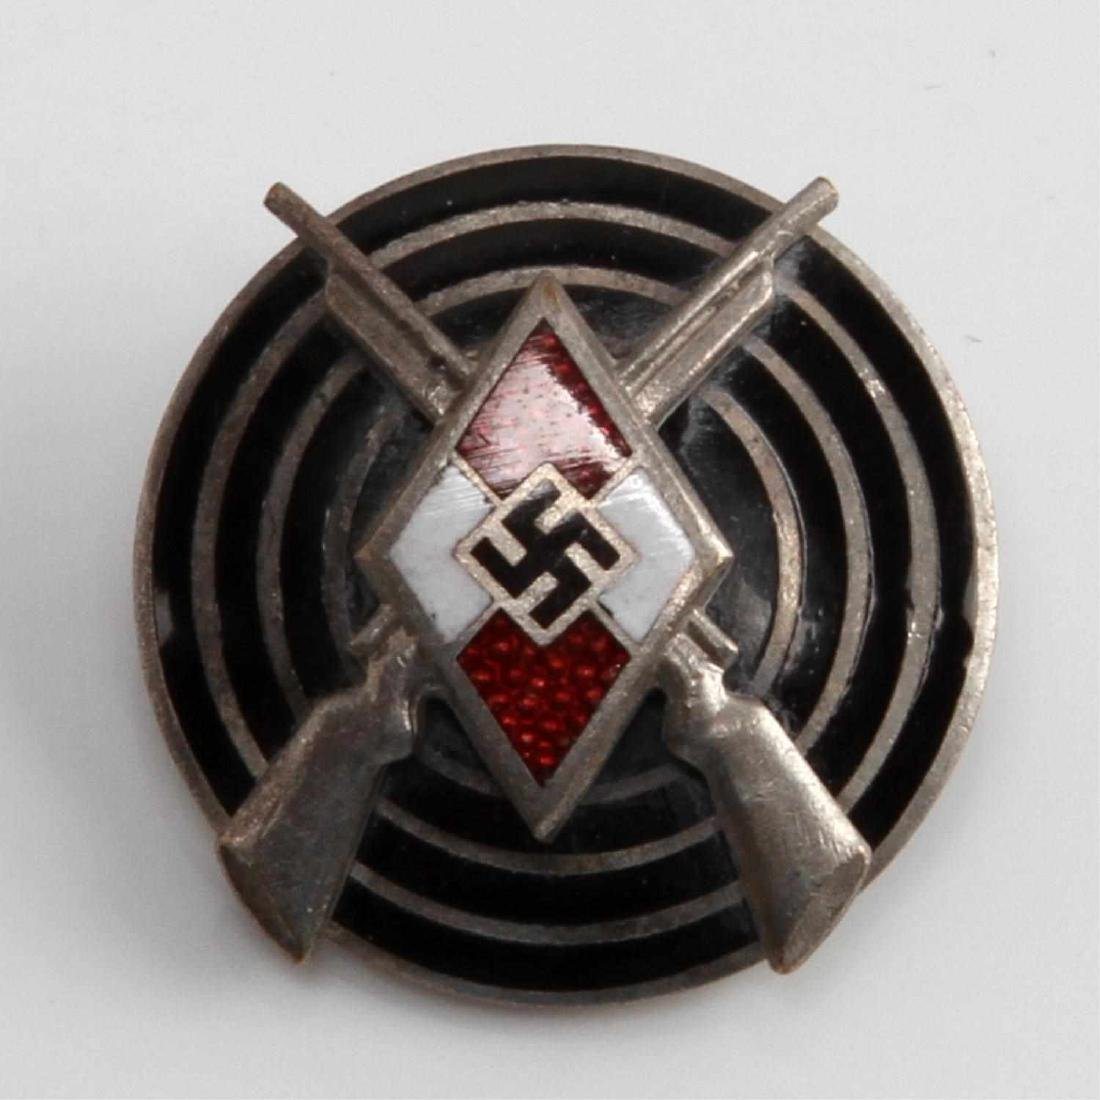 GERMAN THIRD REICH HITLER YOUTH MARKSMAN BADGE